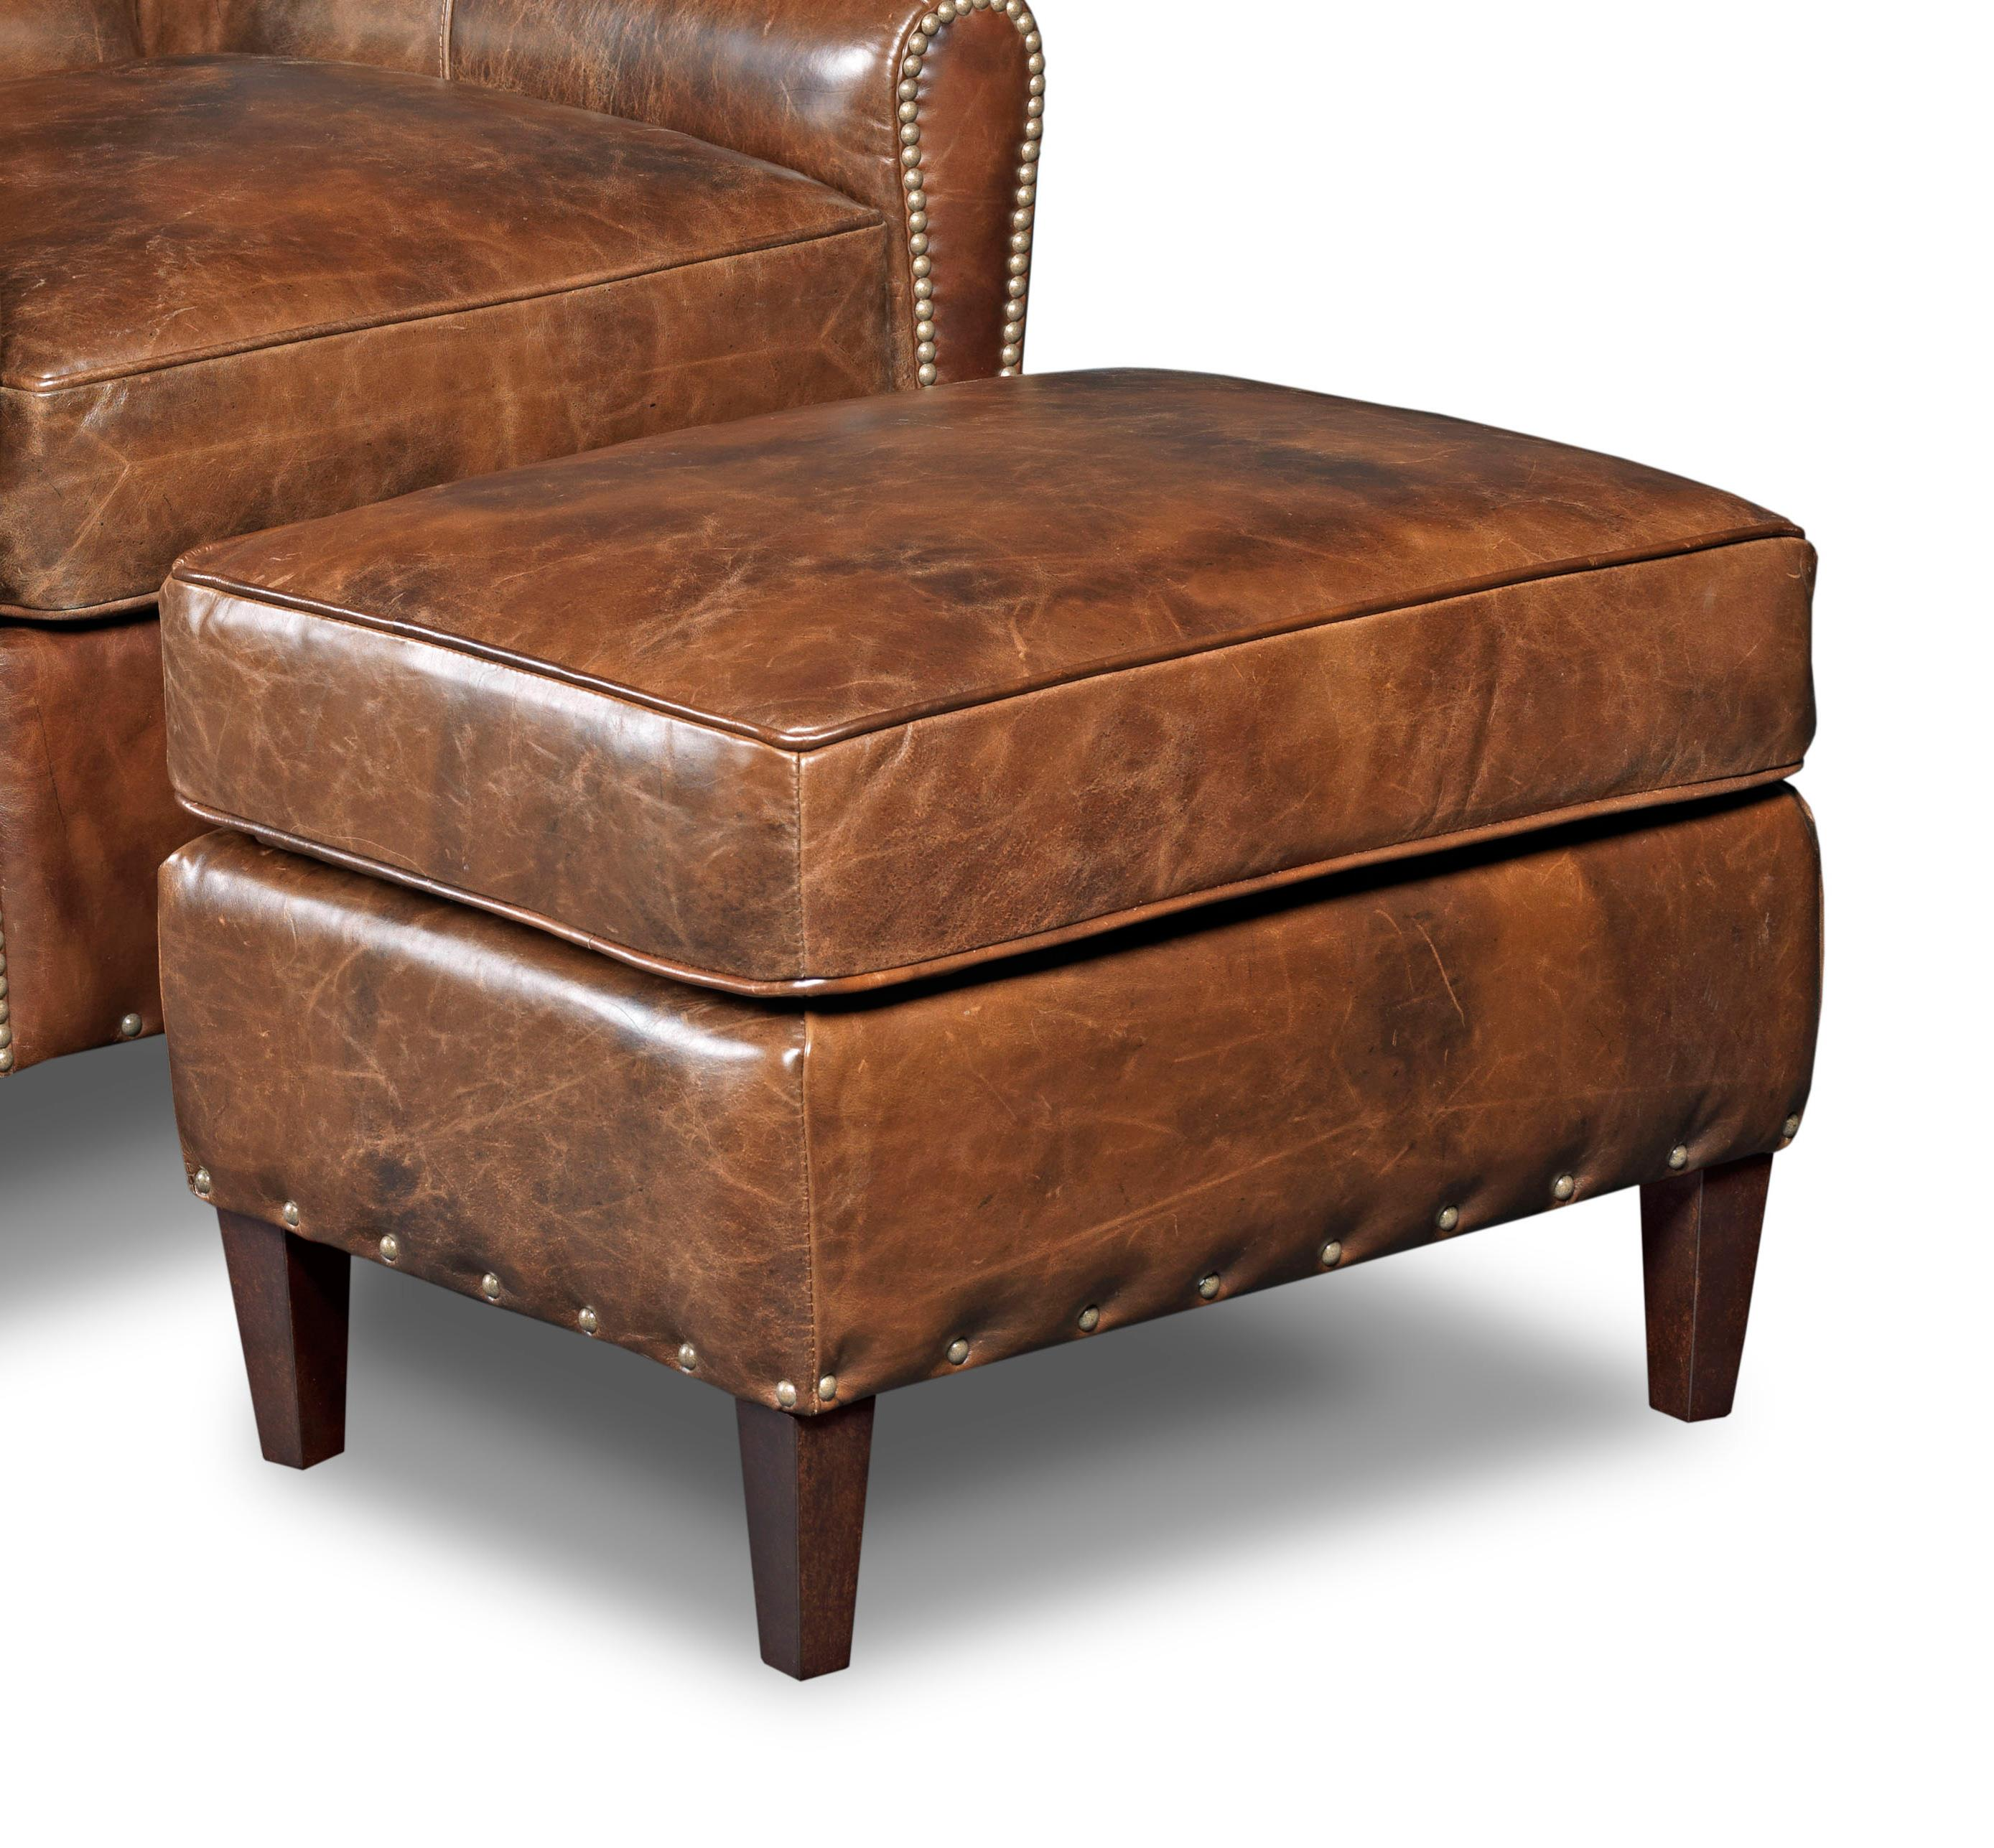 Hooker Furniture Club Chairs Transitional Ottoman with Nailhead